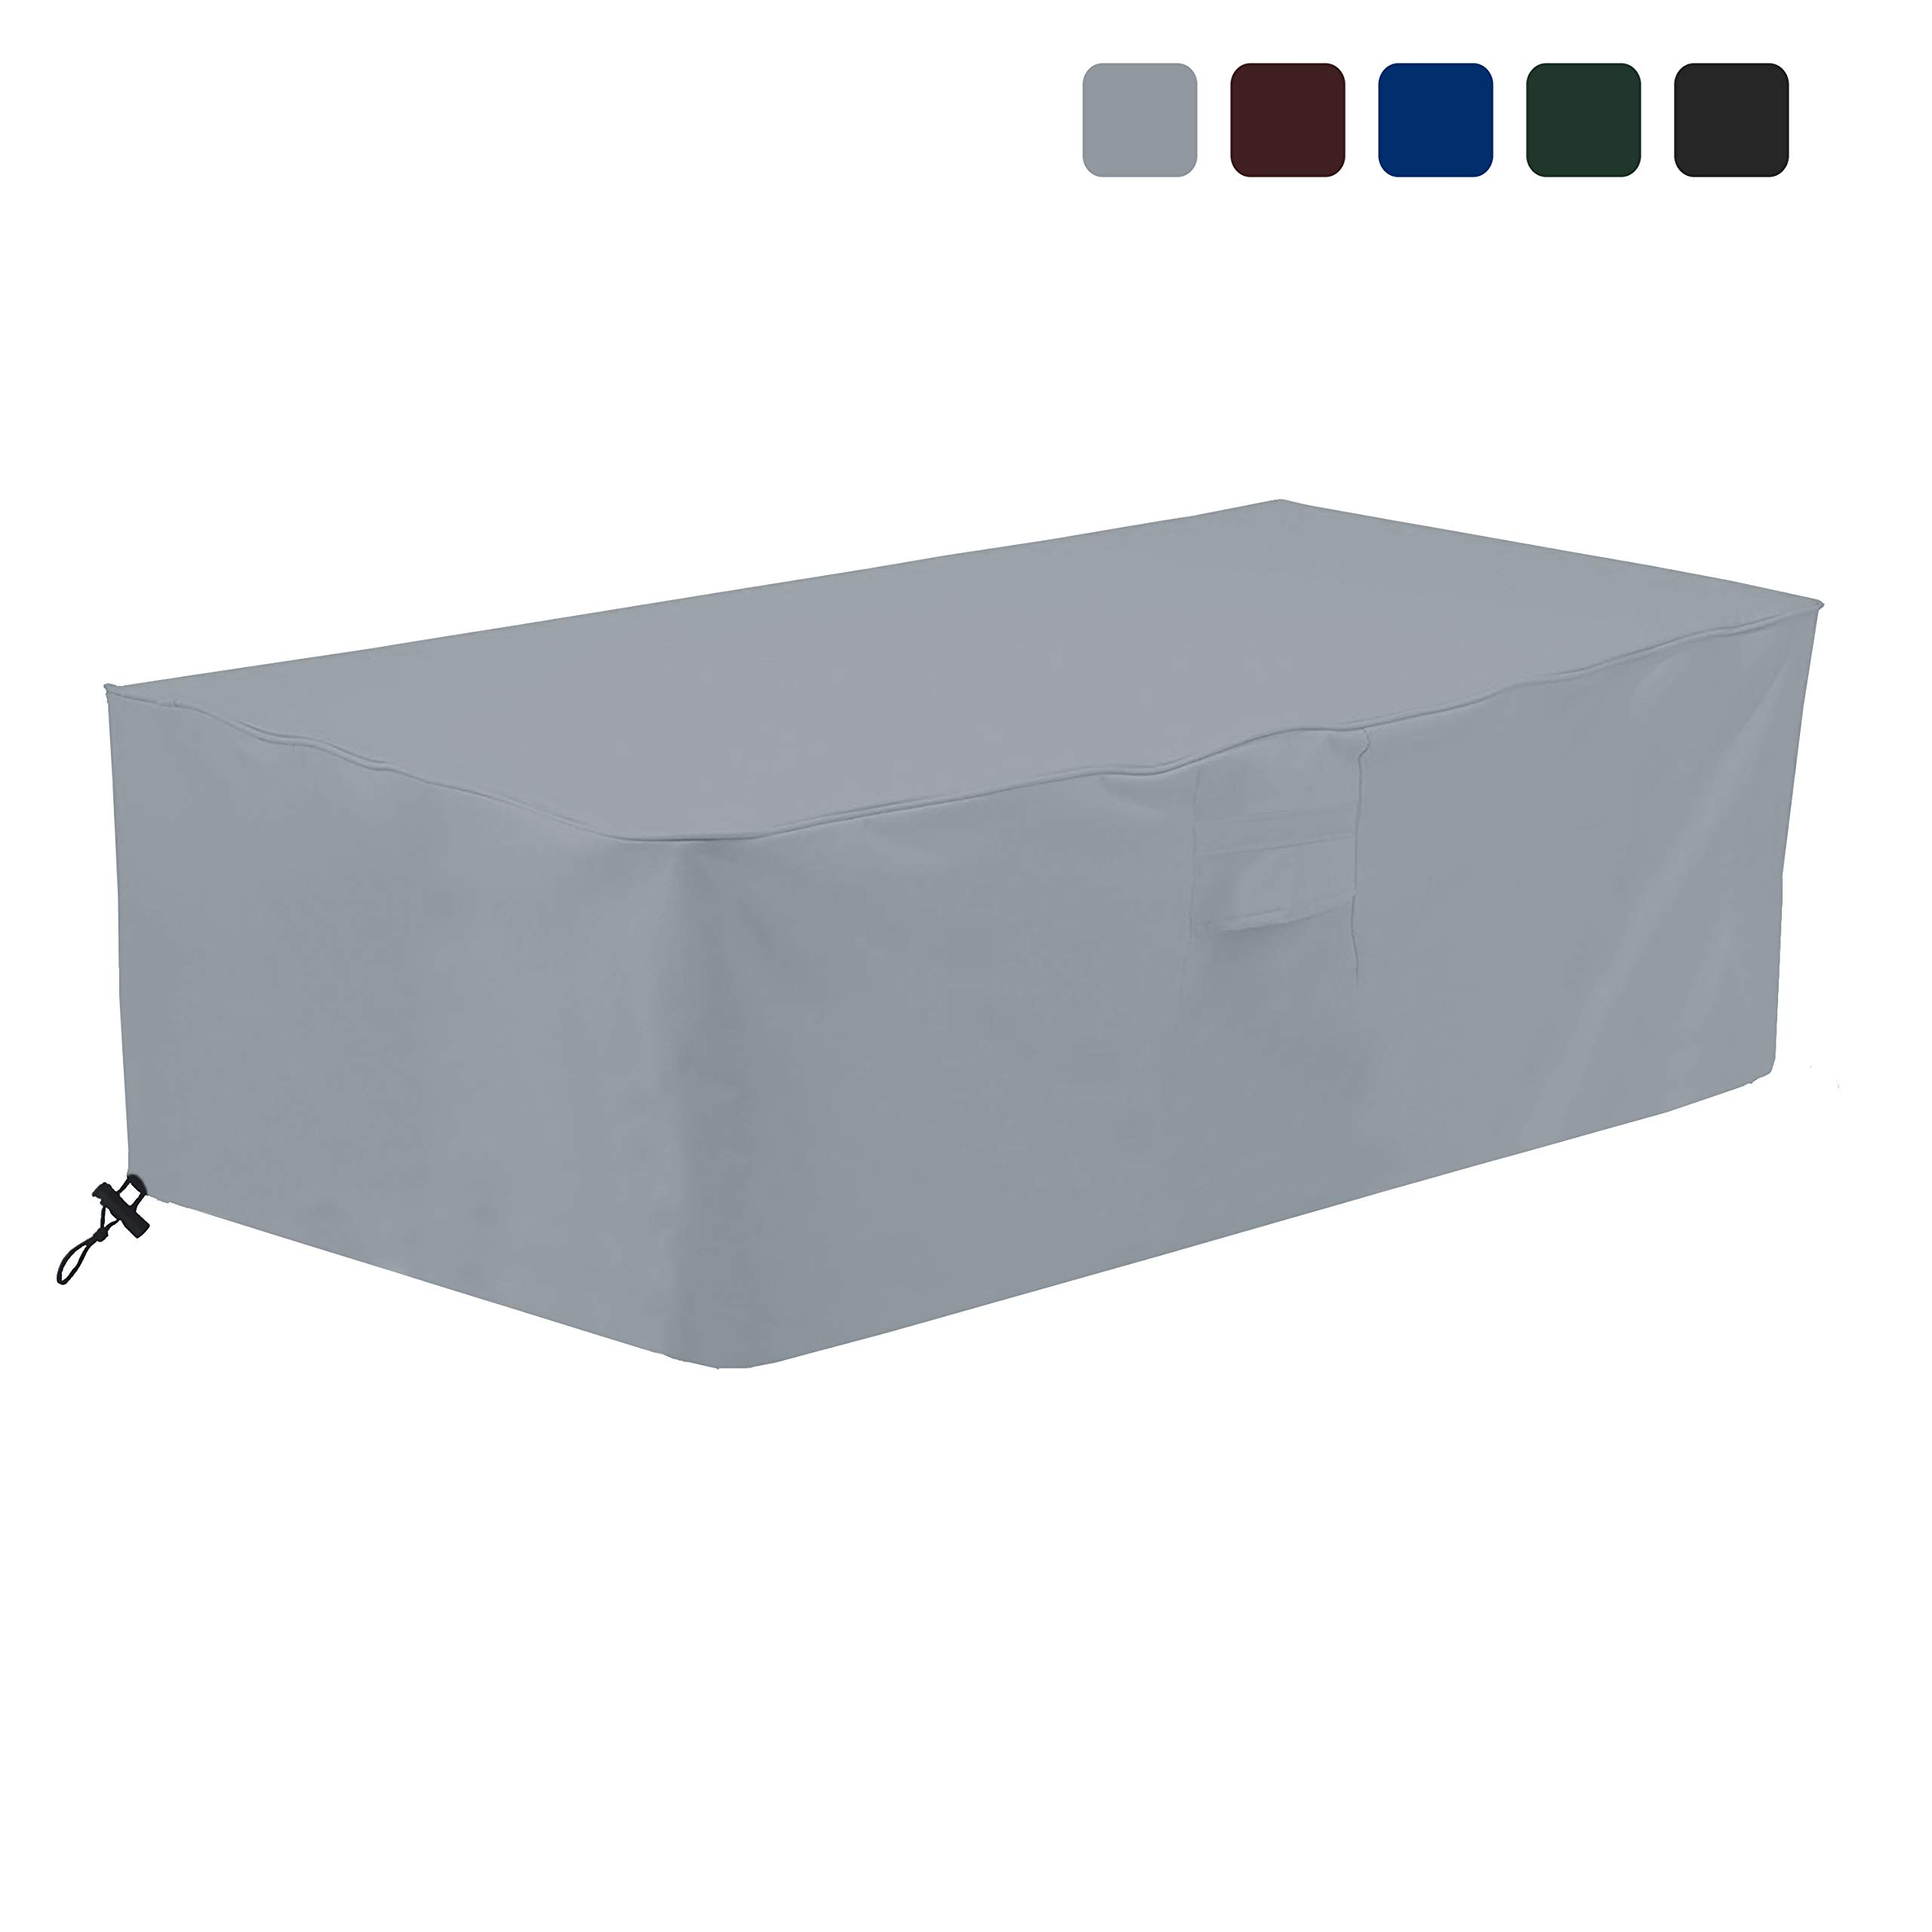 COVERS & ALL Fire Pit Cover Rectangular 18 Oz Waterproof - 100% UV & Weather Resistant Custom Size Gas Fire Pit Cover with Air Pockets and Drawstring for Snug Fit (48'' W x 25'' D x 18'' H, Grey) by COVERS & ALL